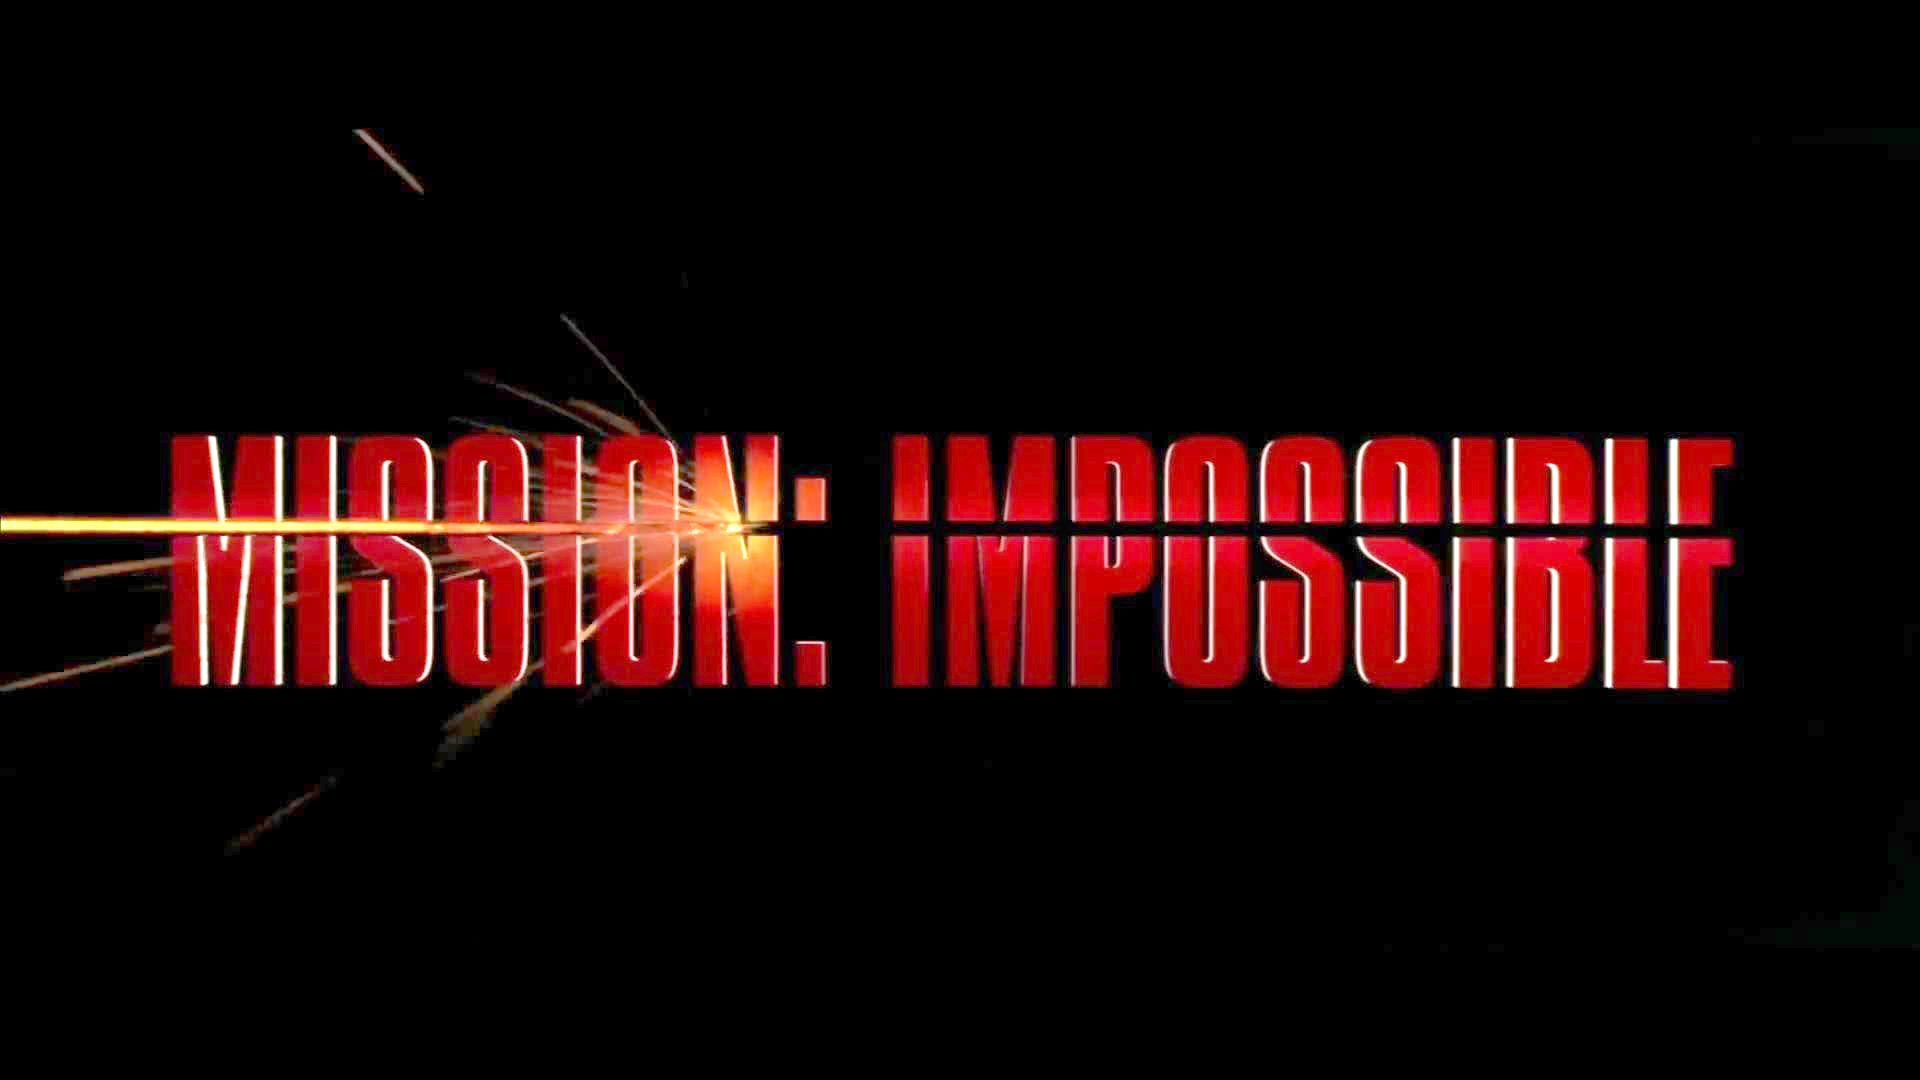 0792b70536e0d mission impossible theme song | Title Sequences & Theme Songs ...